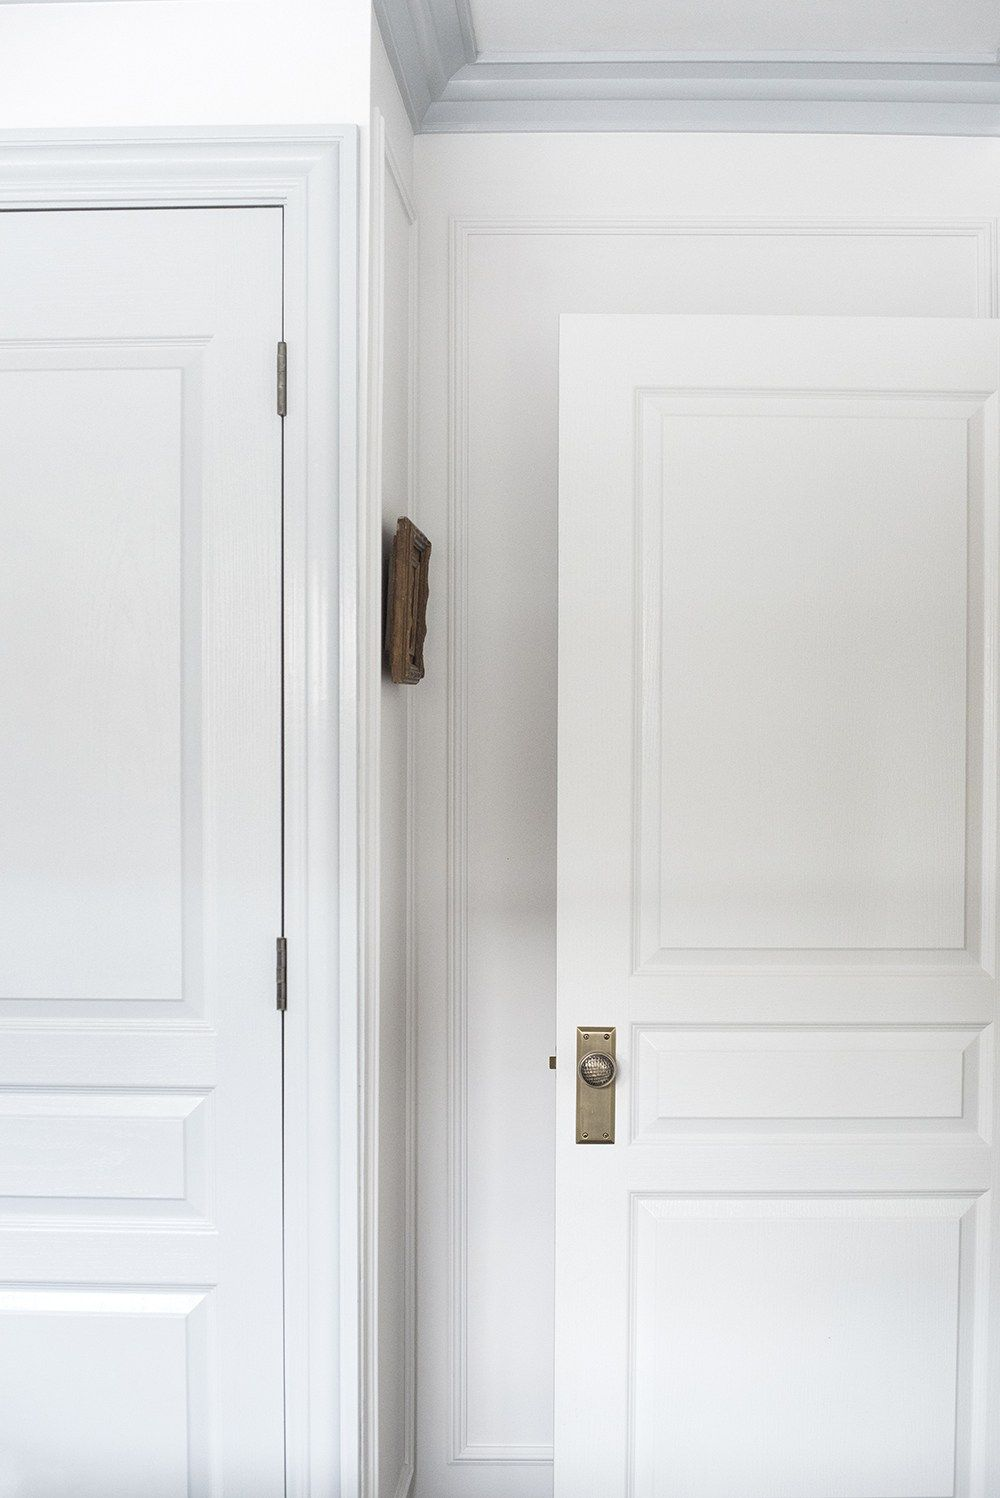 Master bedroom entry doors  My Thoughts On Moulding u Millwork  Interiors  Pinterest  House